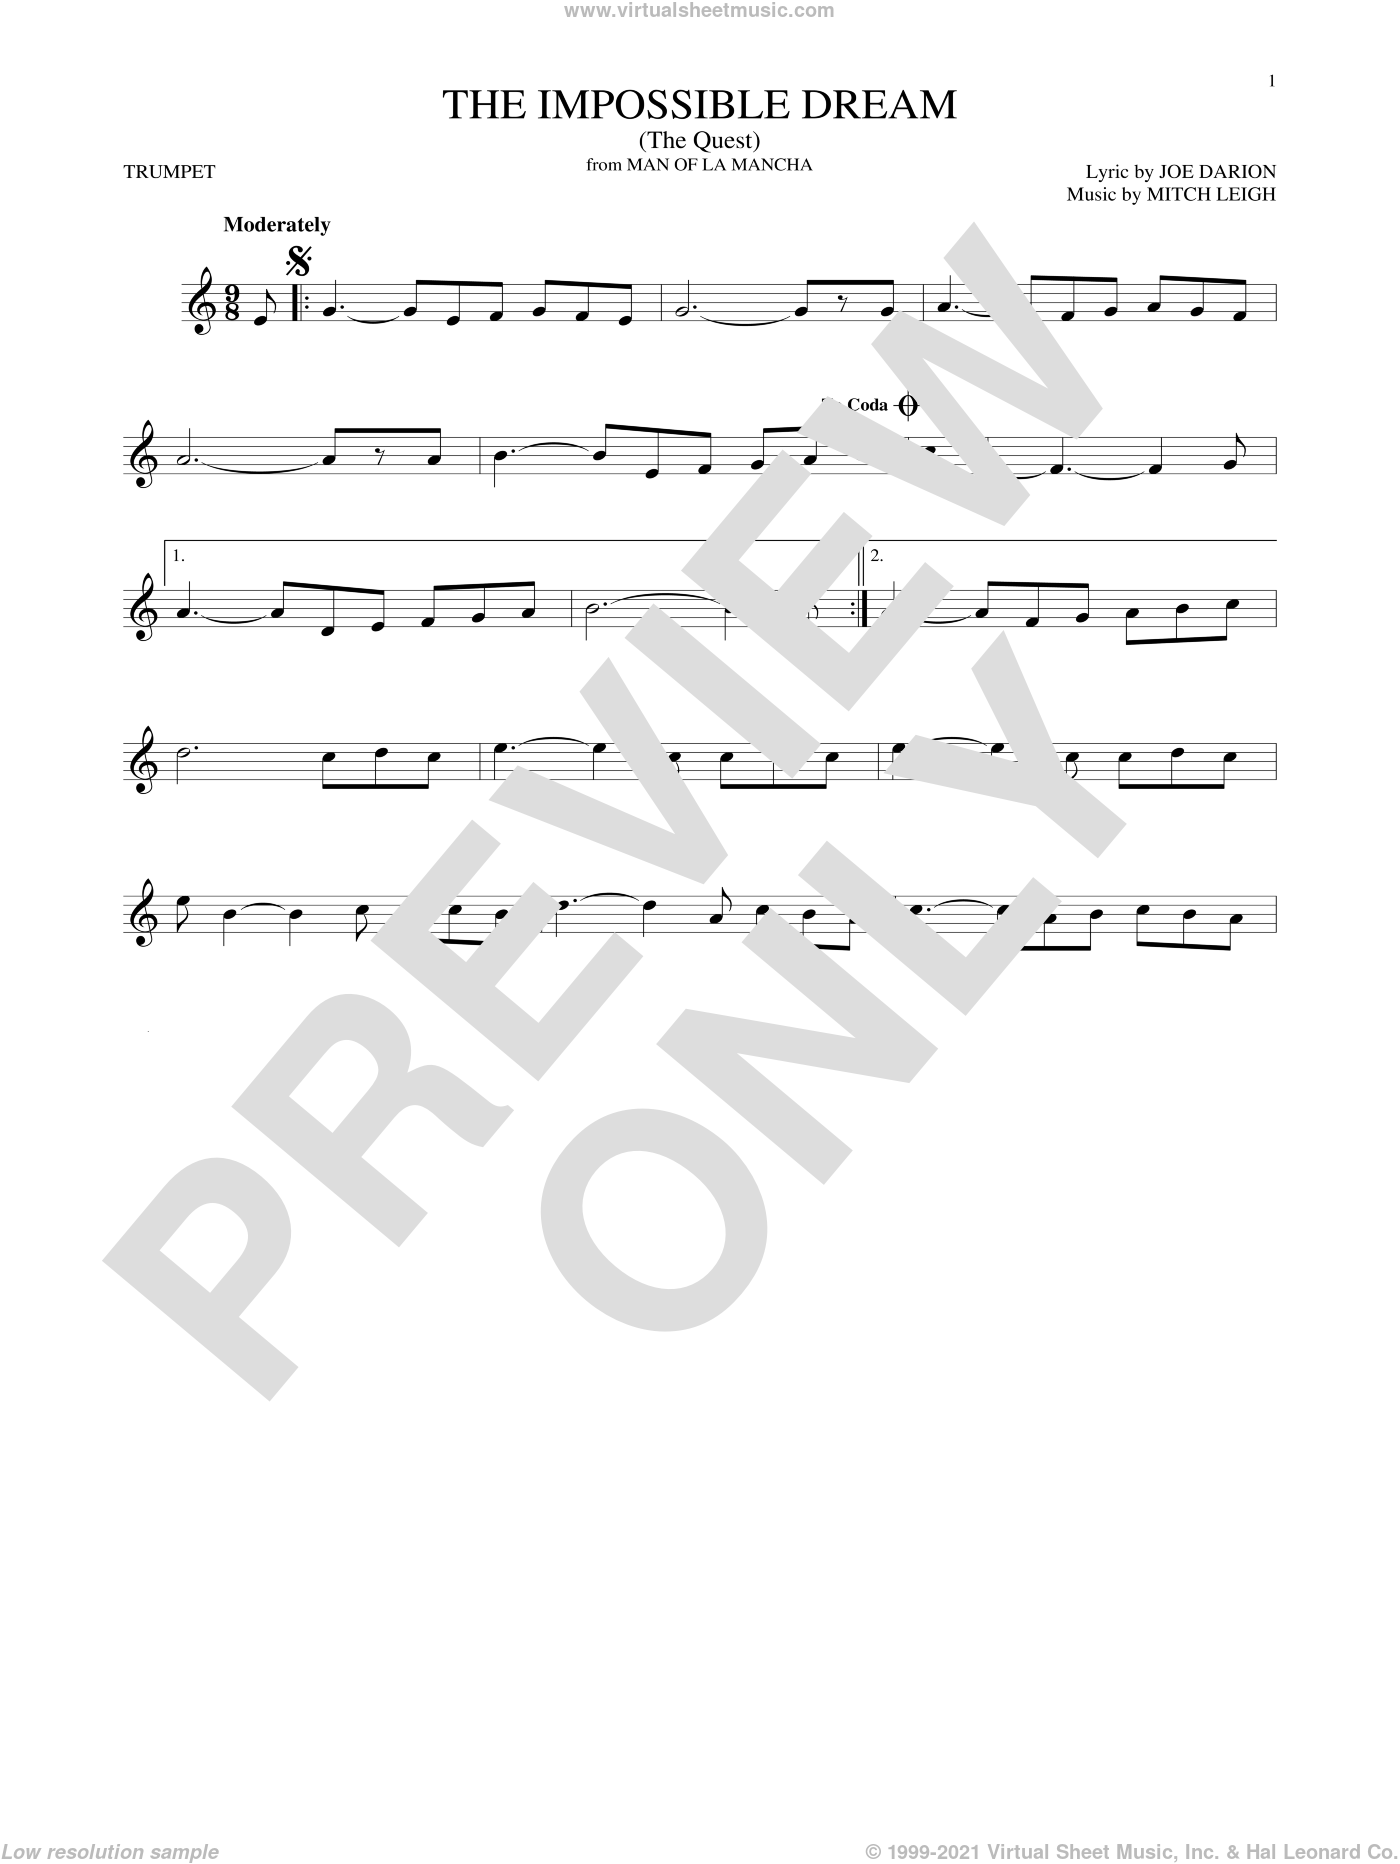 The Impossible Dream (The Quest) sheet music for trumpet solo by Joe Darion and Mitch Leigh, intermediate. Score Image Preview.